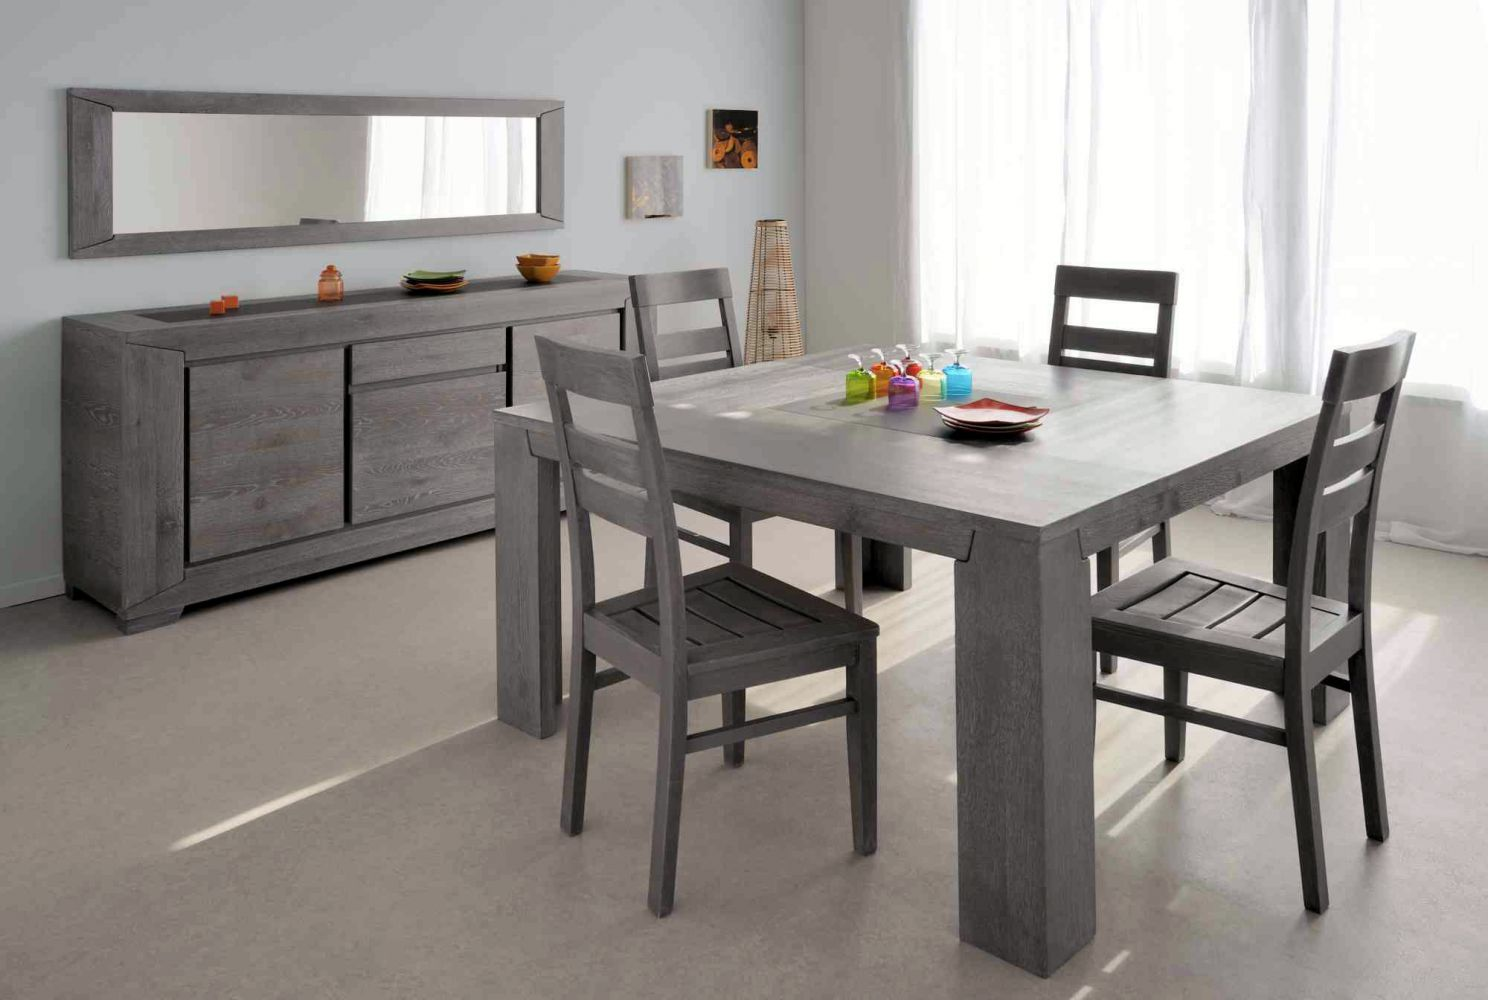 Salle a manger compl te conforama table carr e meuble et d coration marseille mobilier - Photo de table ...